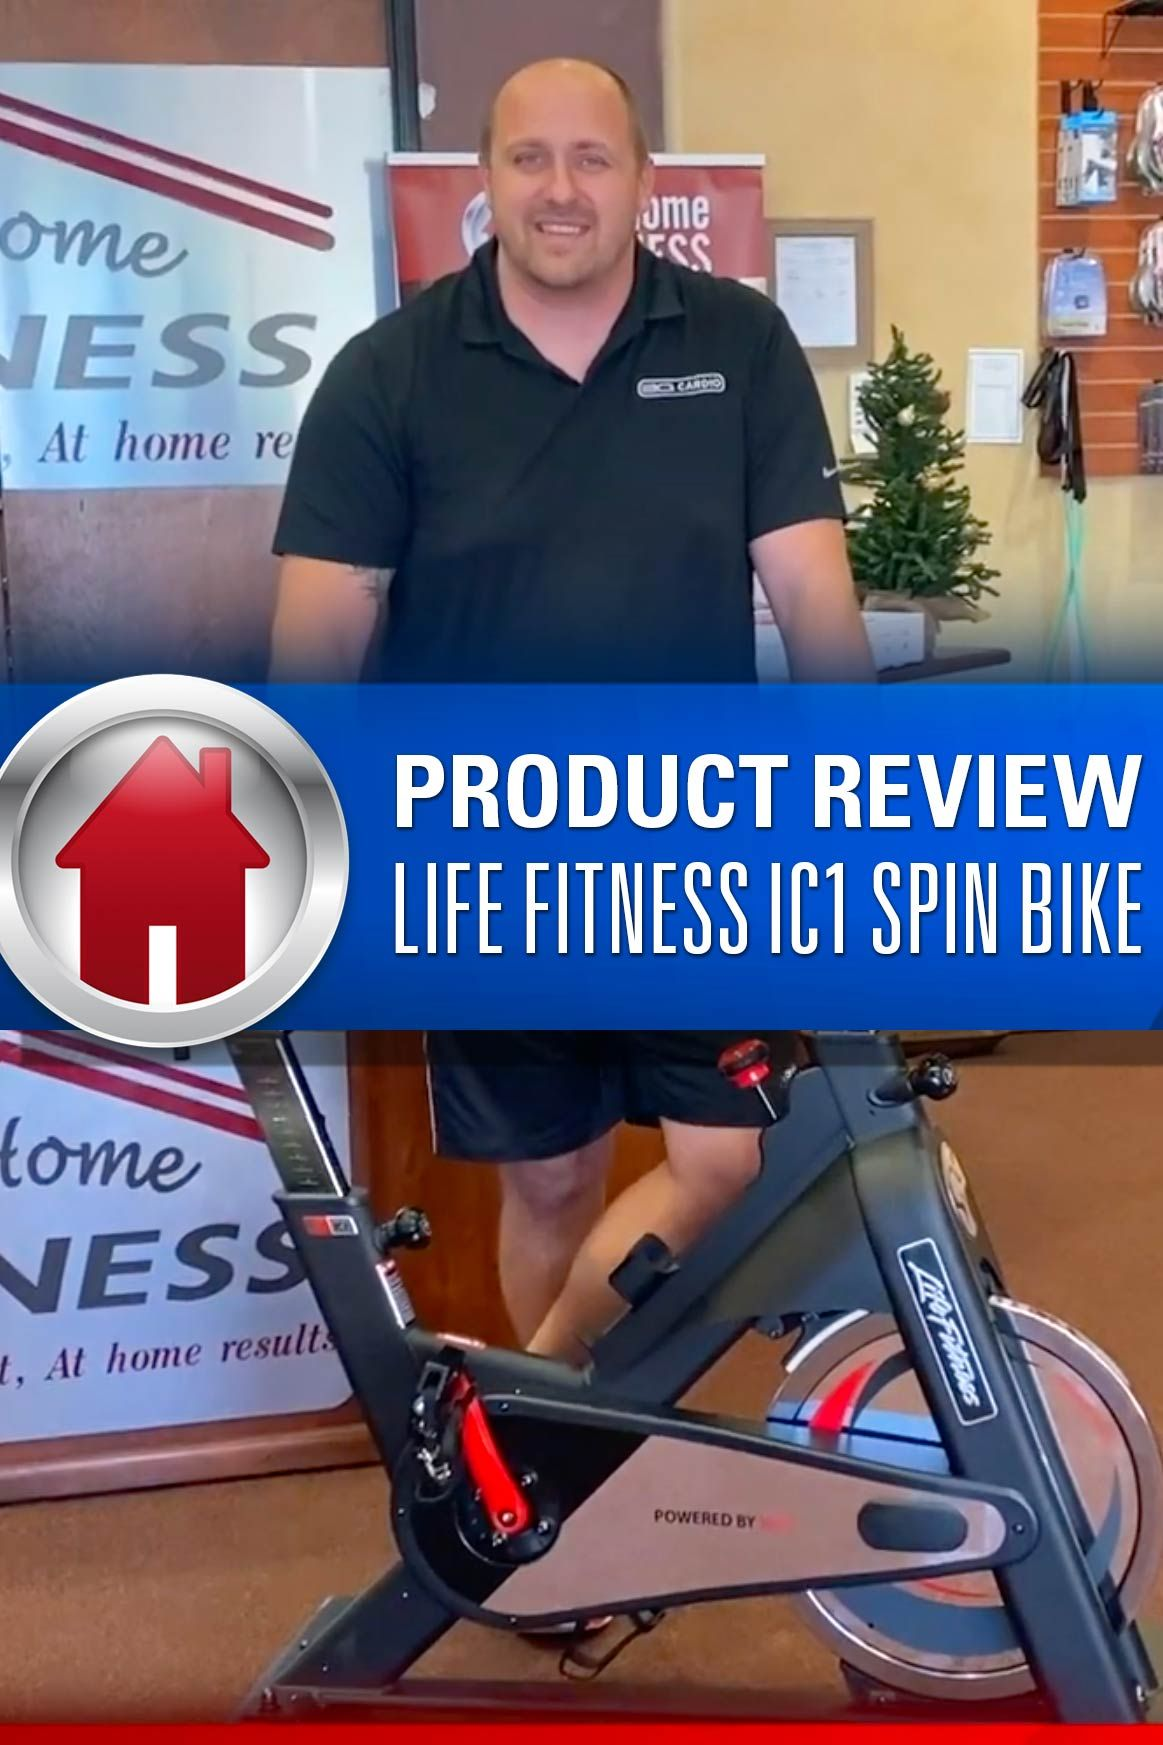 At Home Fitness Mike Sullivan Reviews Life Fitness Ic1 Spin Bike Spin Bikes Fit Life At Home Workouts